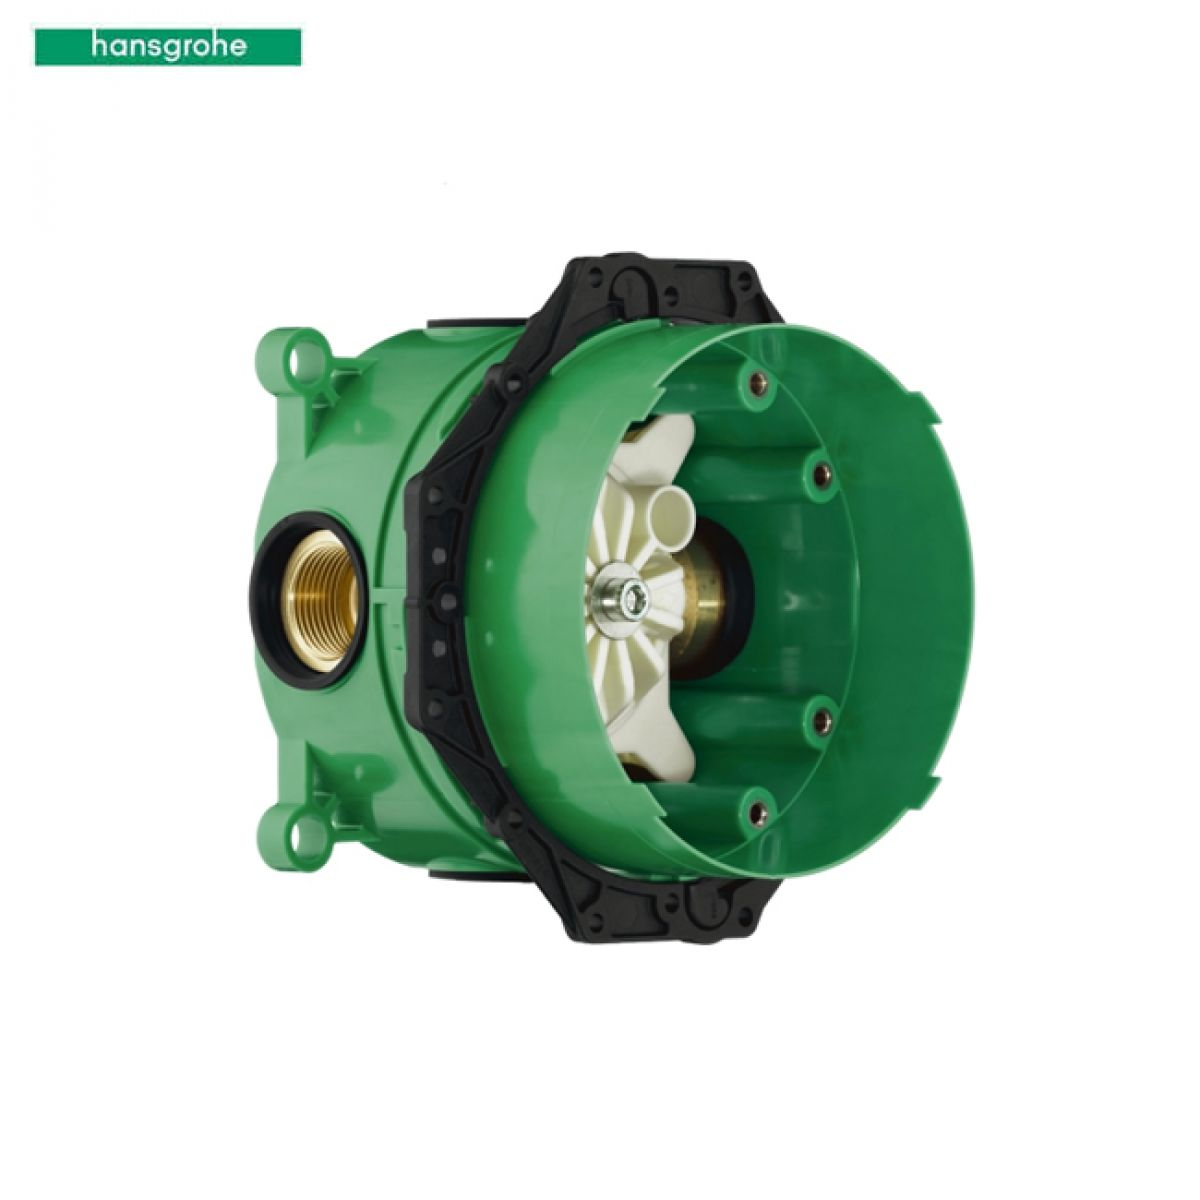 hansgrohe ecostat s concealed shower valve